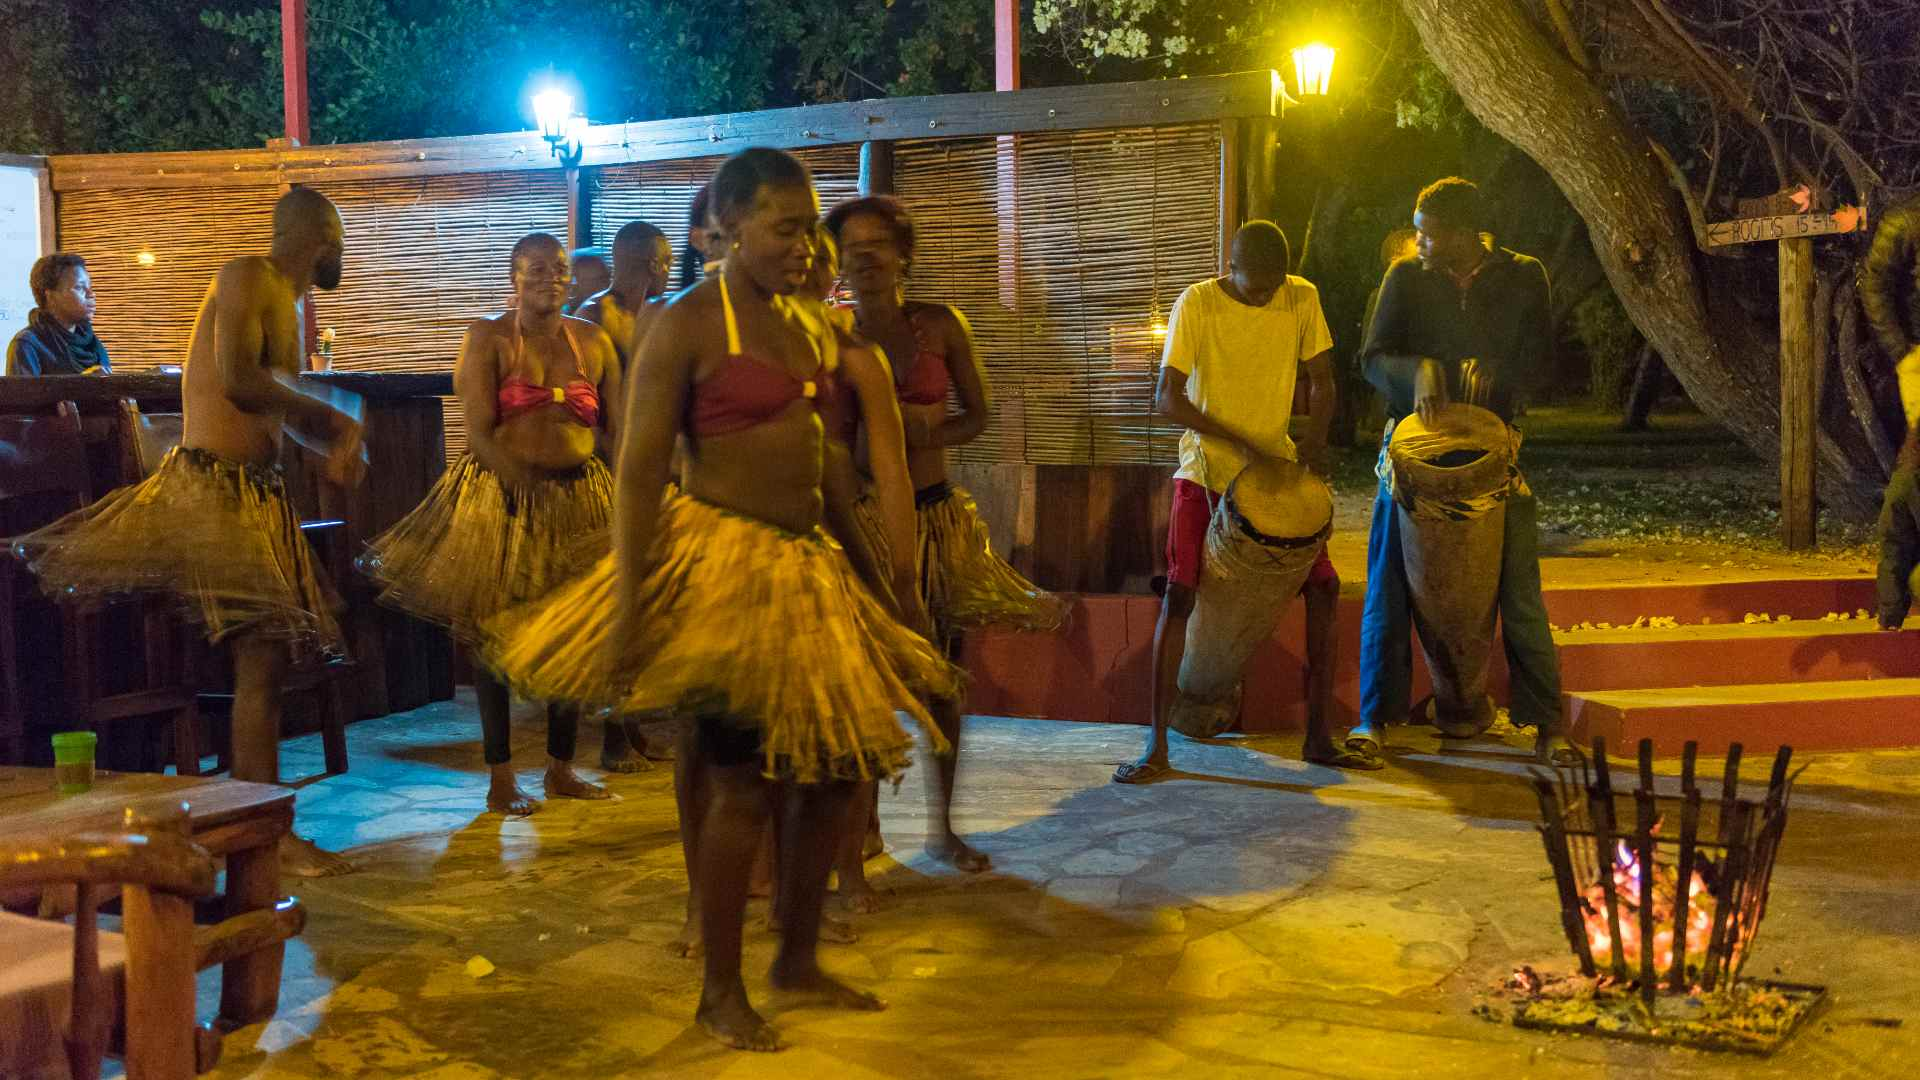 Guest can also enjoy traditional performances in the evenings.